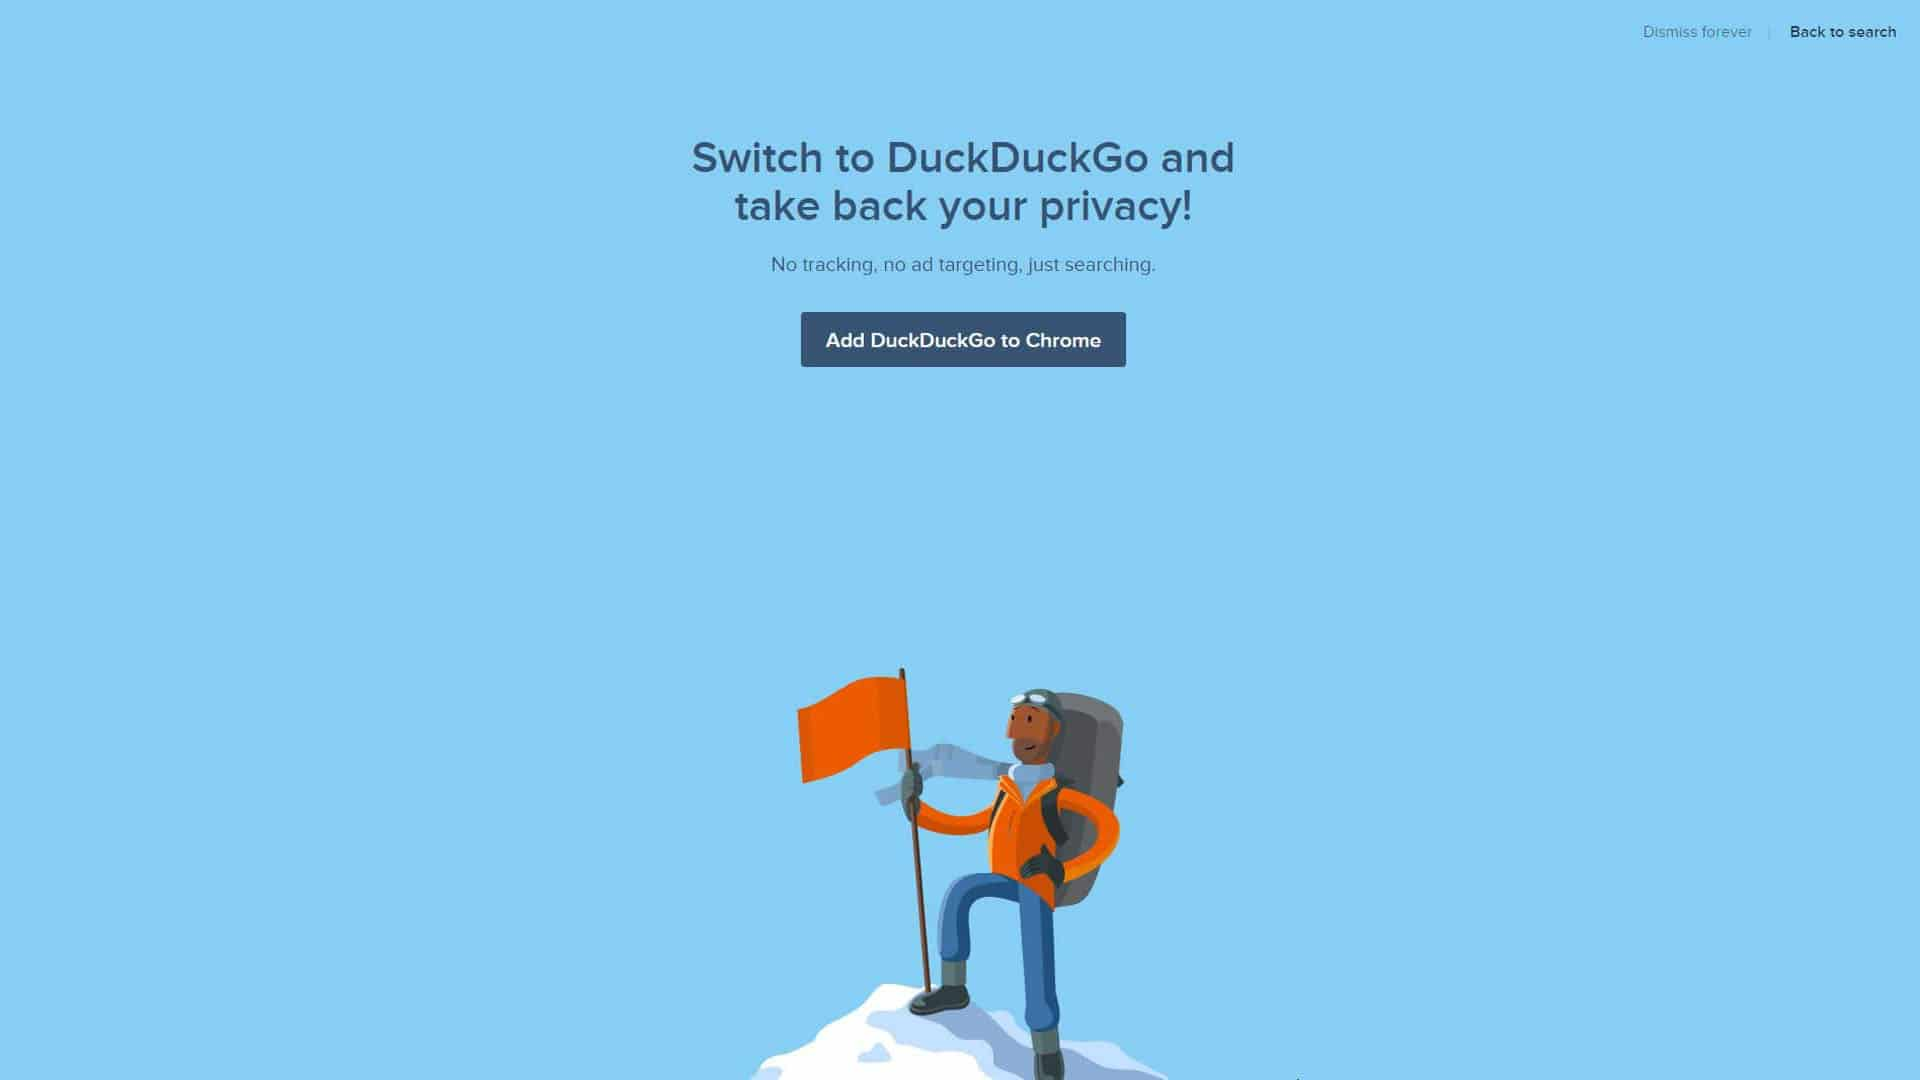 Duck Duck Go Switch To DuckDuckGo And Take Back Your Privacy